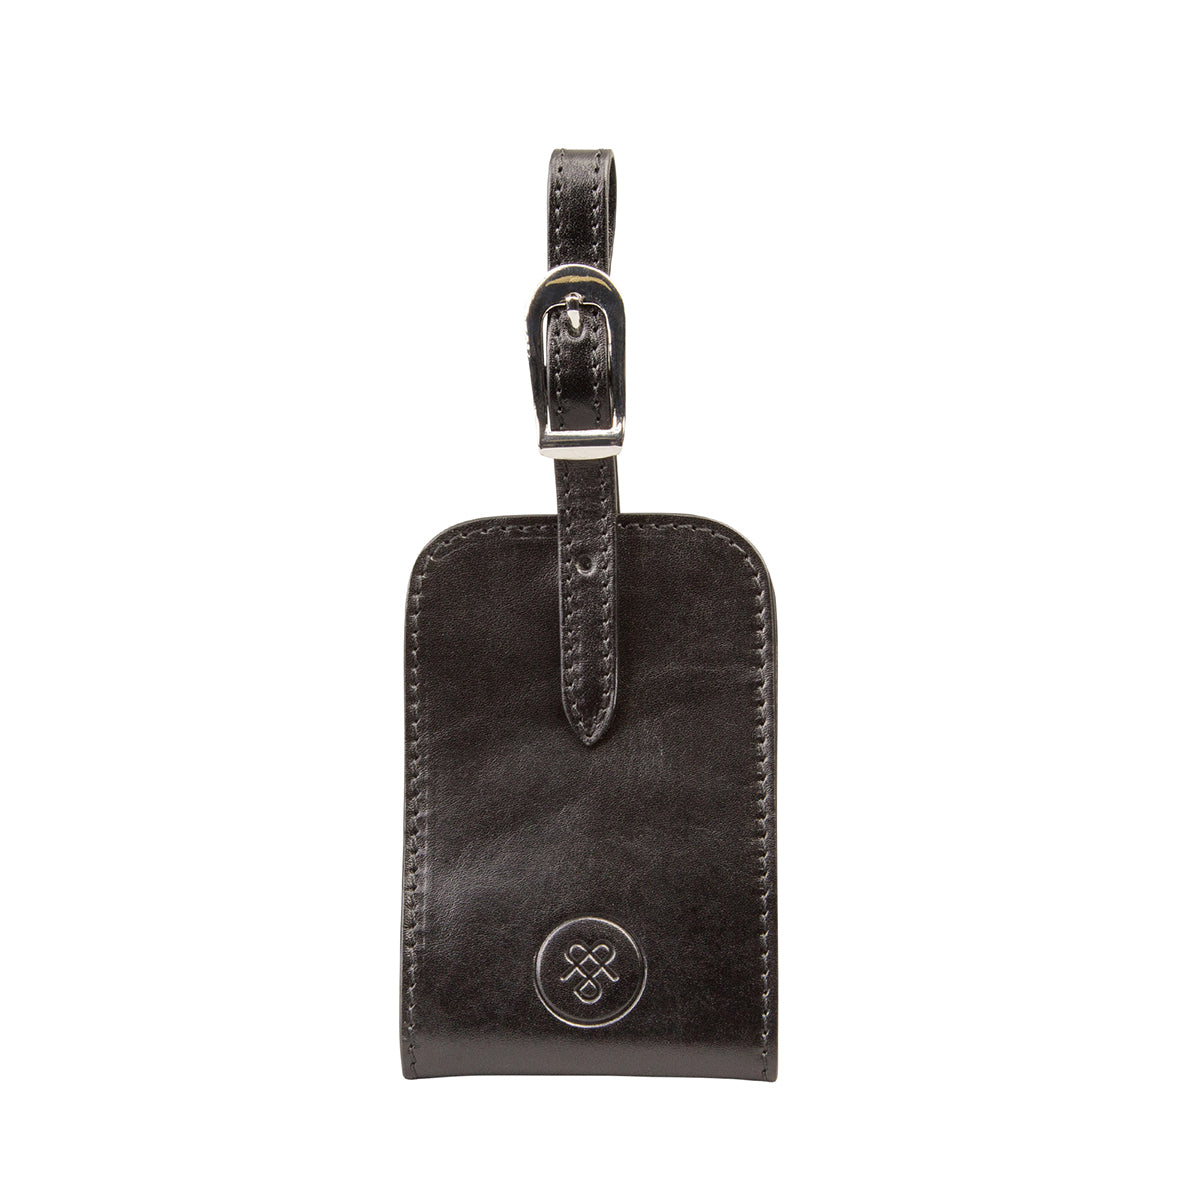 Image 1 of the 'Ledro' Black ID Luggage Tag